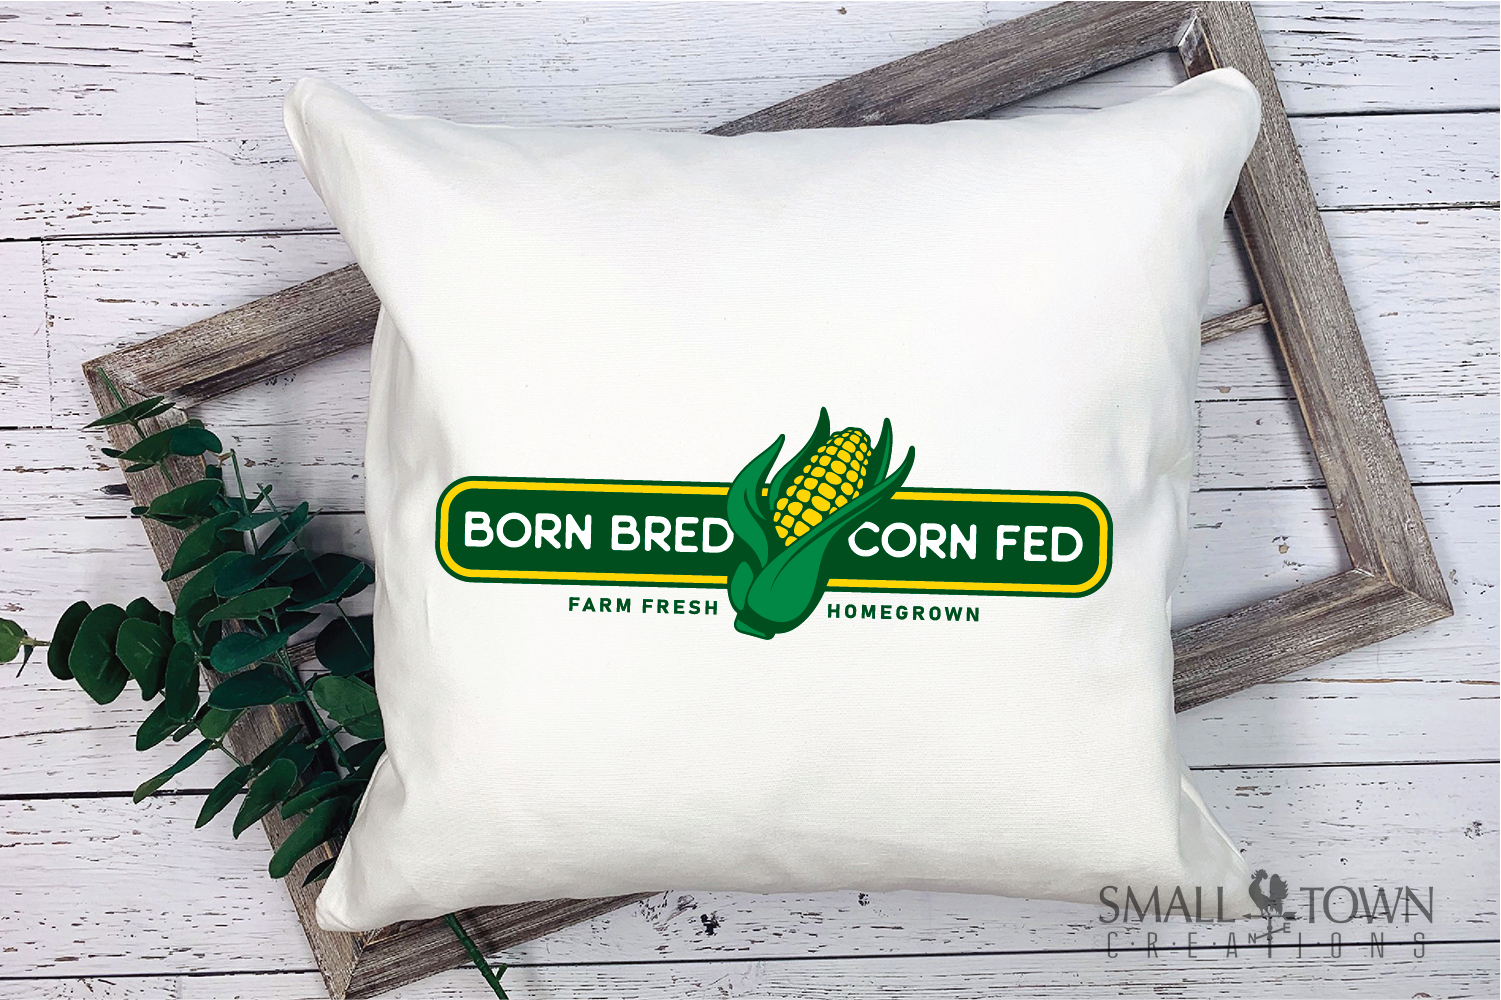 Born Bred Corn Fed, Homegrown, Farm Fresh PRINT, & DESIGN example image 5